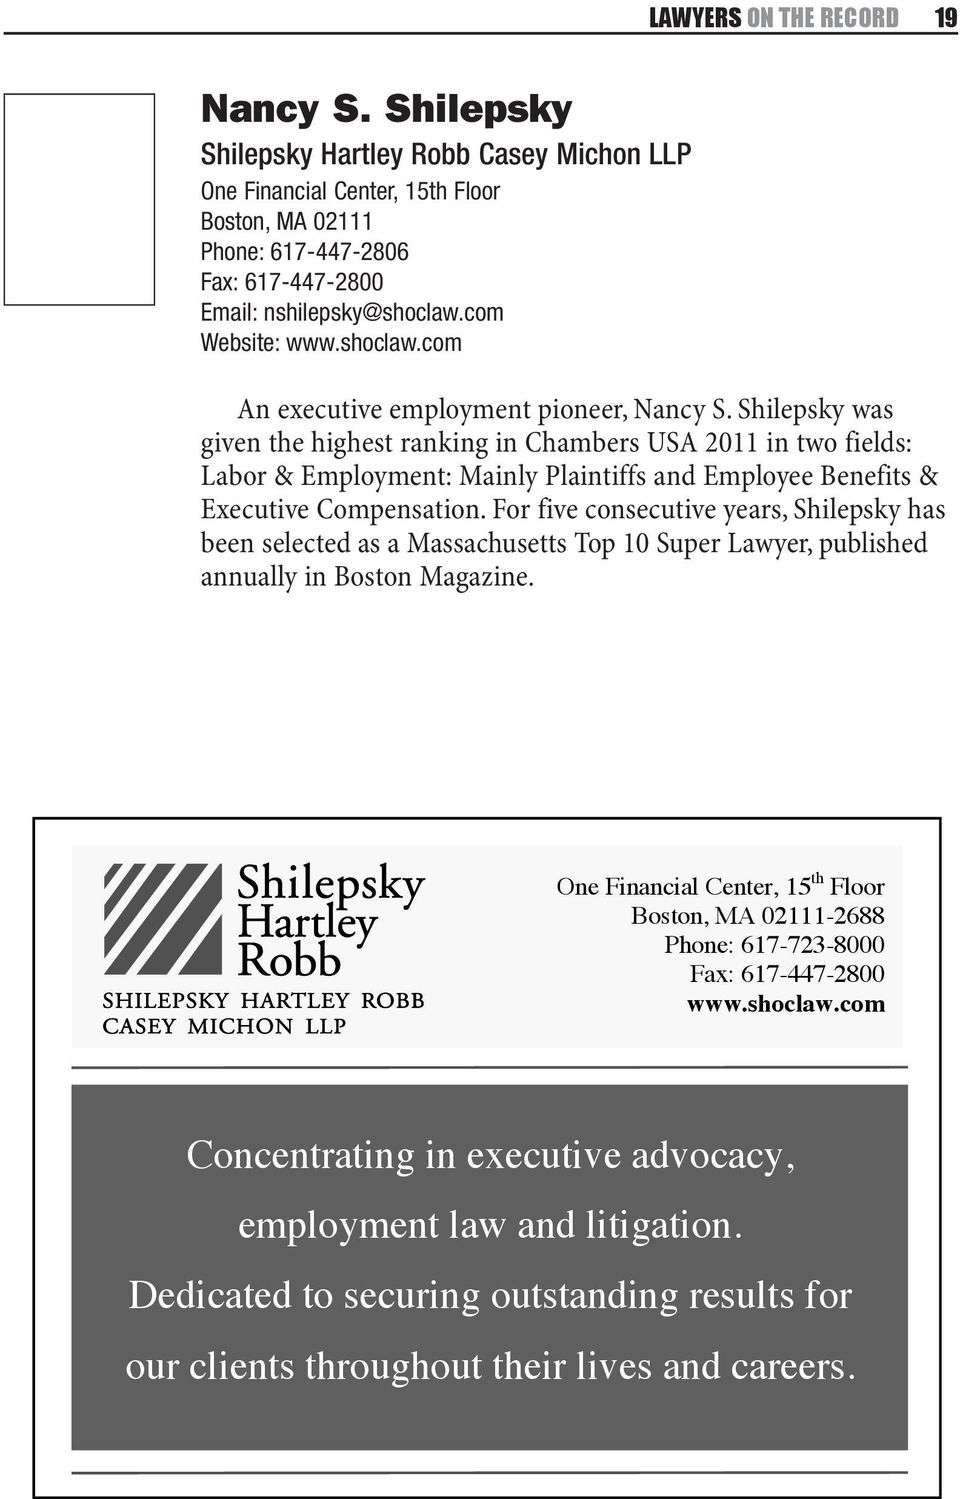 Shilepsky was given the highest ranking in Chambers USA 2011 in two fields: Labor & Employment: Mainly Plaintiffs and Employee Benefits & Executive Compensation.